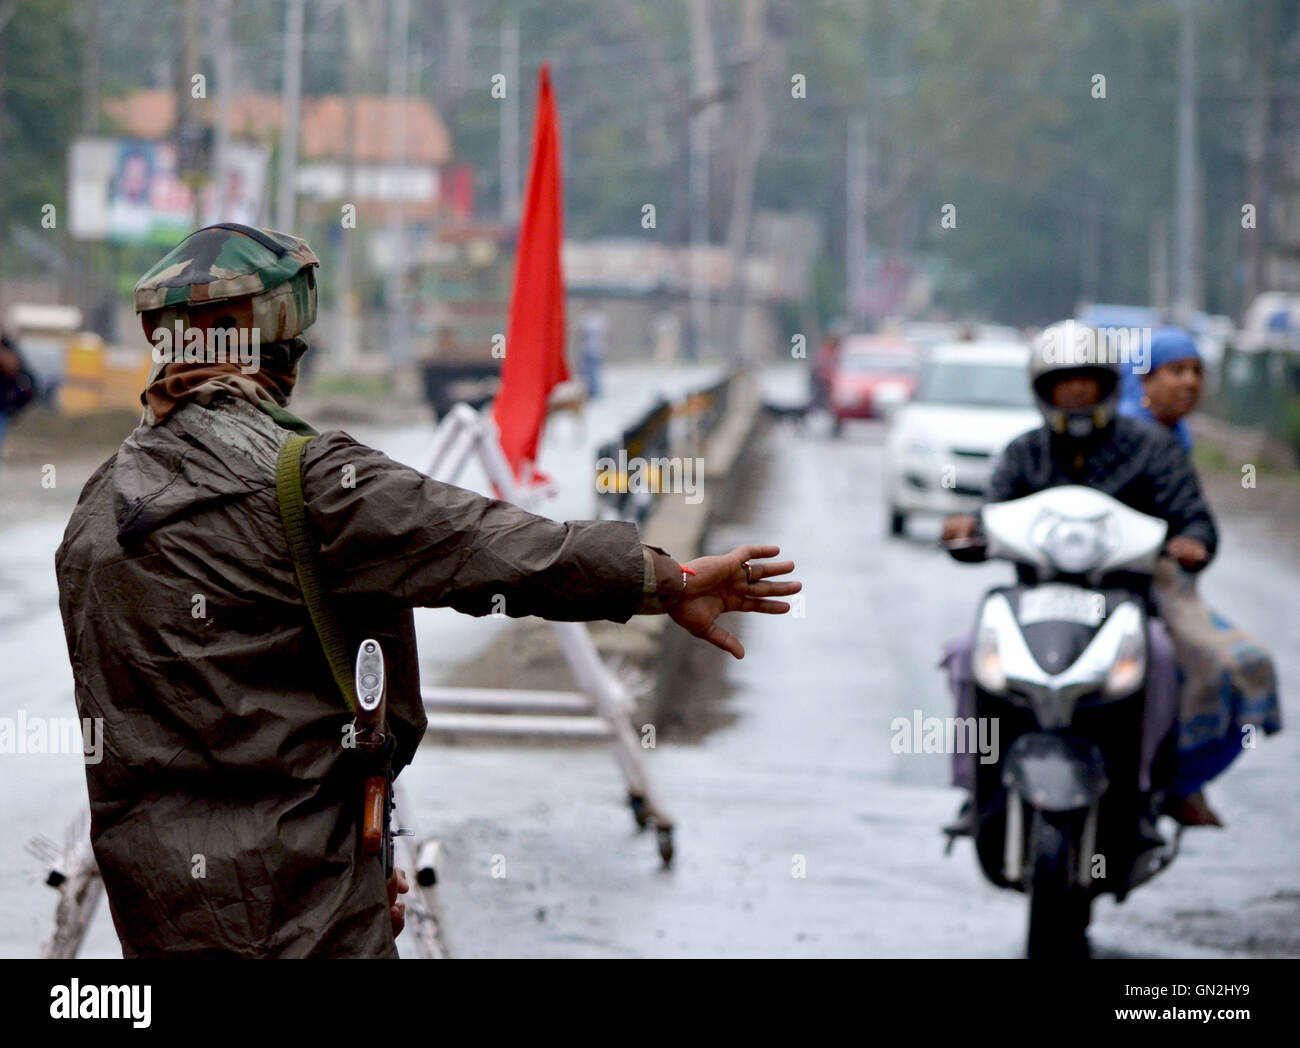 Srinaga, Kashmir. 27th Aug, 2016. An Indian army man stops a scooter in Srinagar the summer capital of Indian controlled - Stock Image